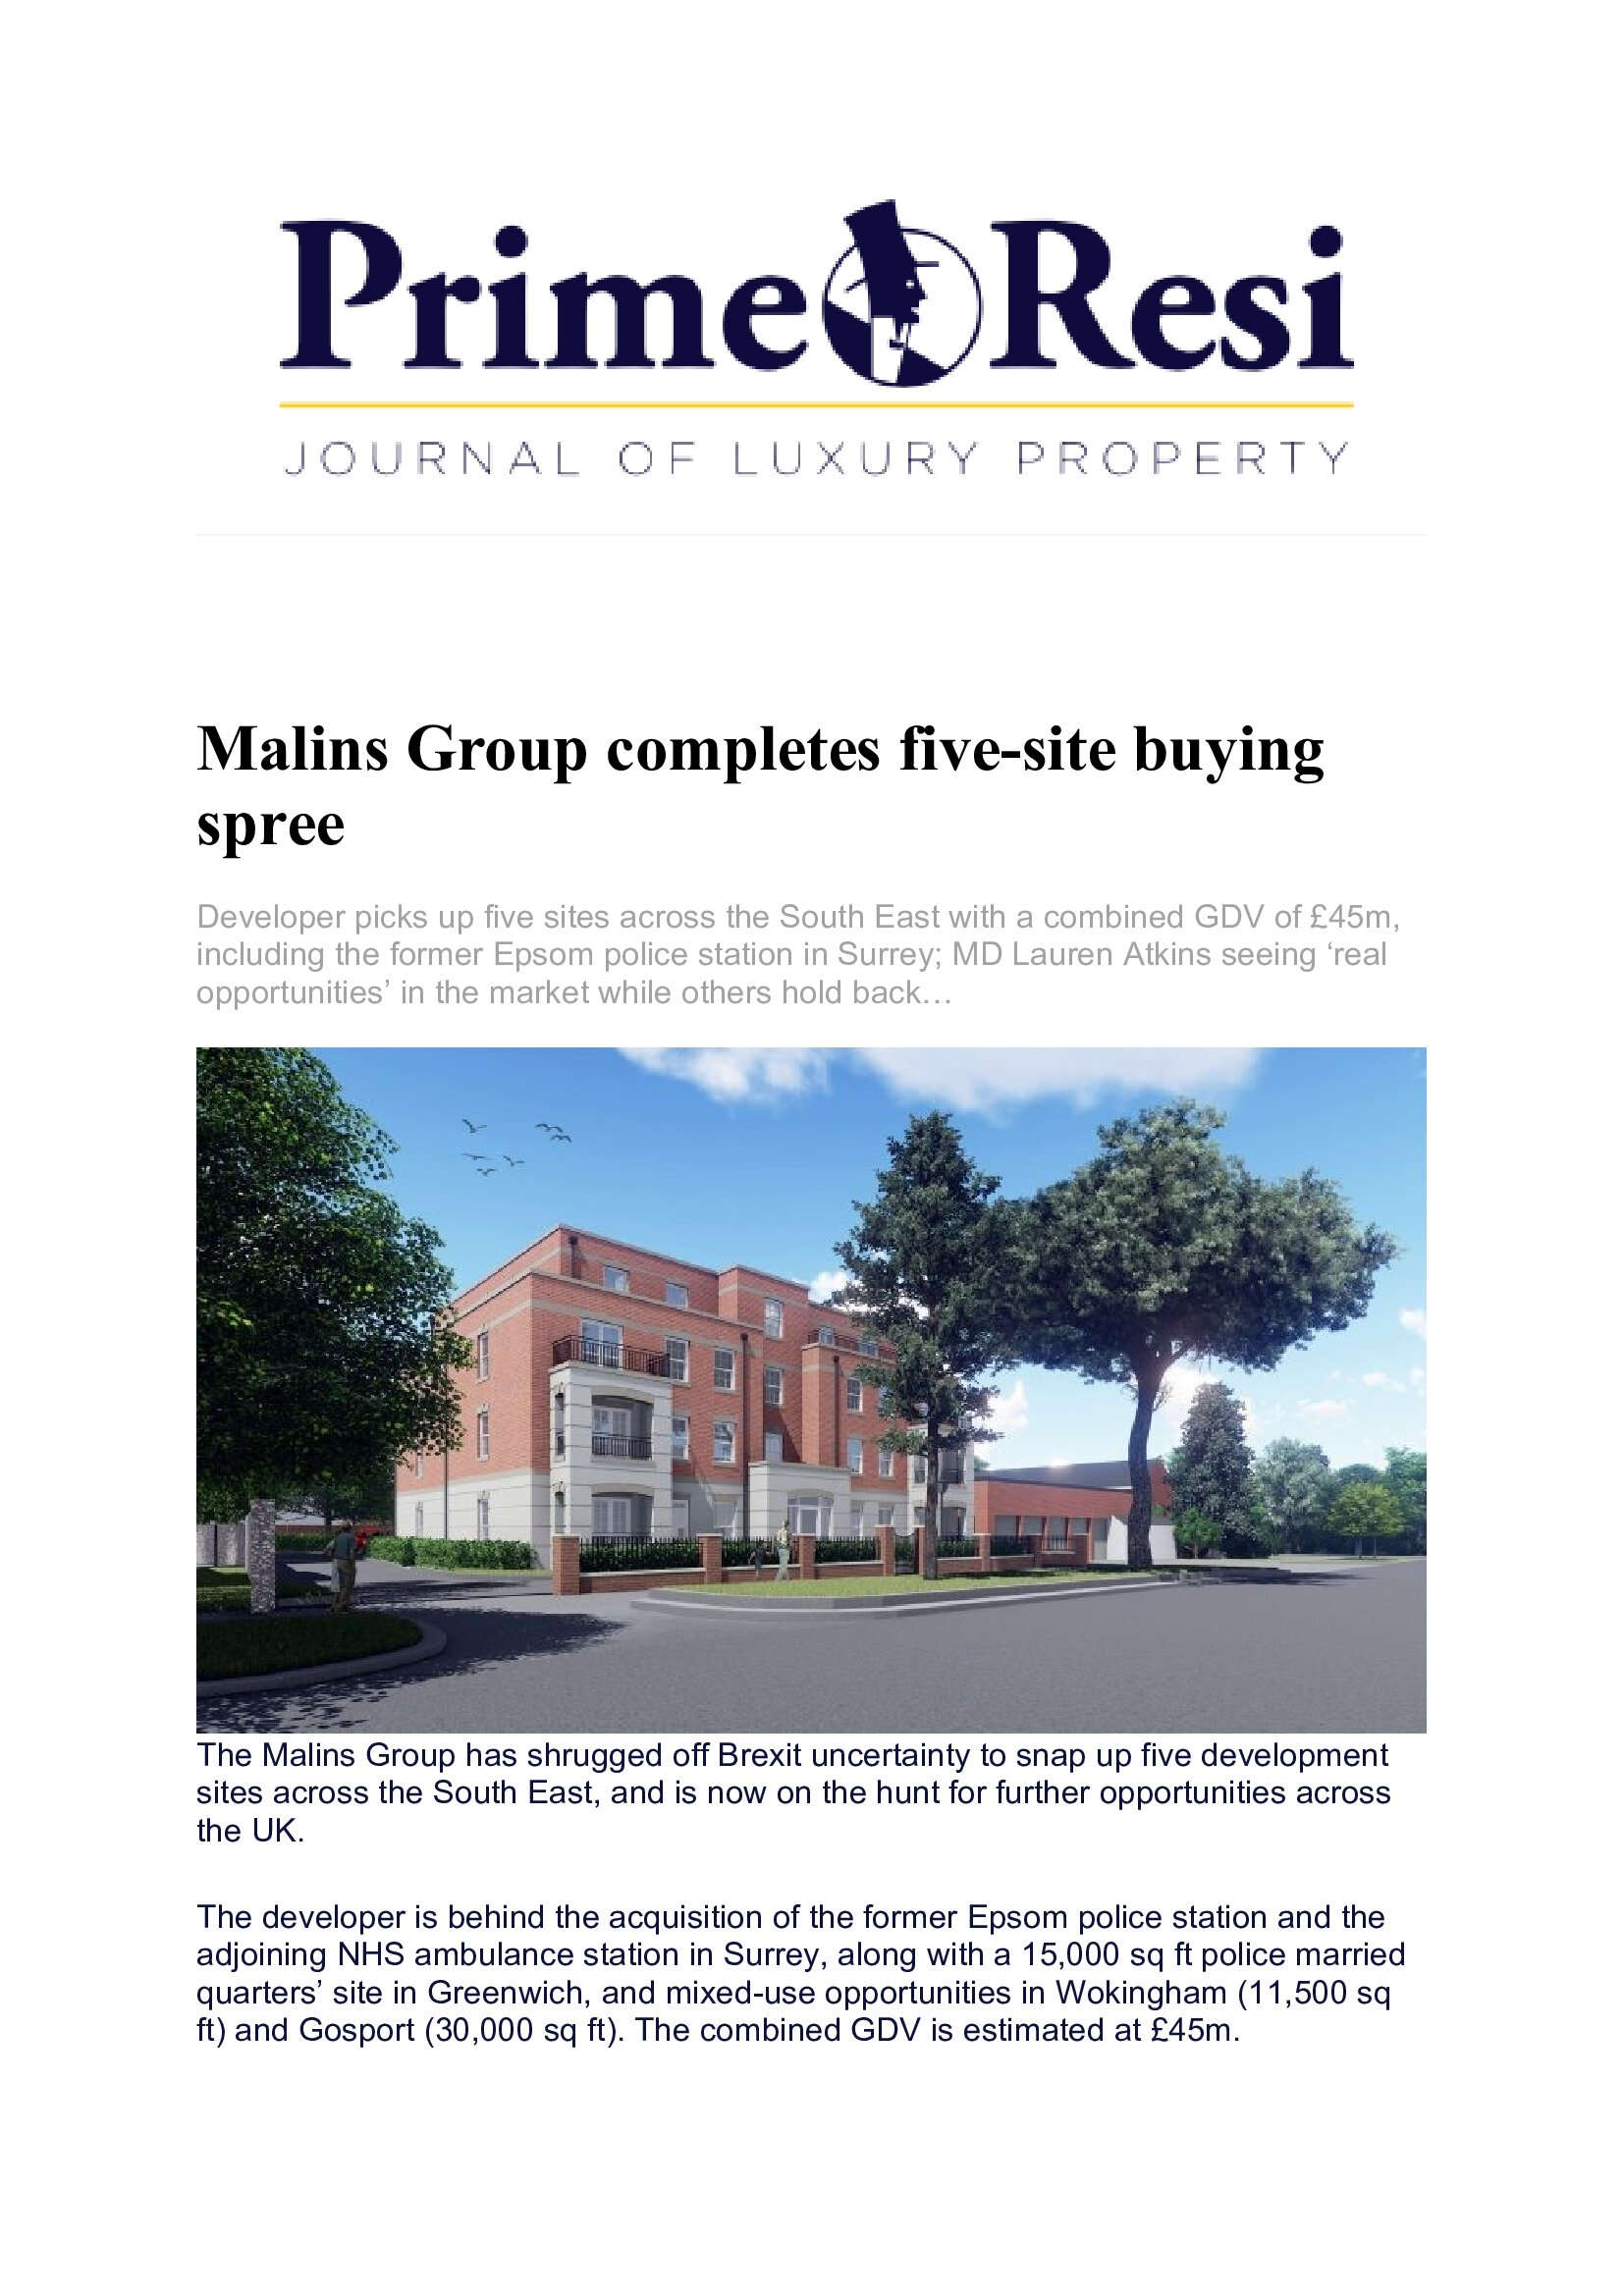 Malins Group – Press & Public Relations